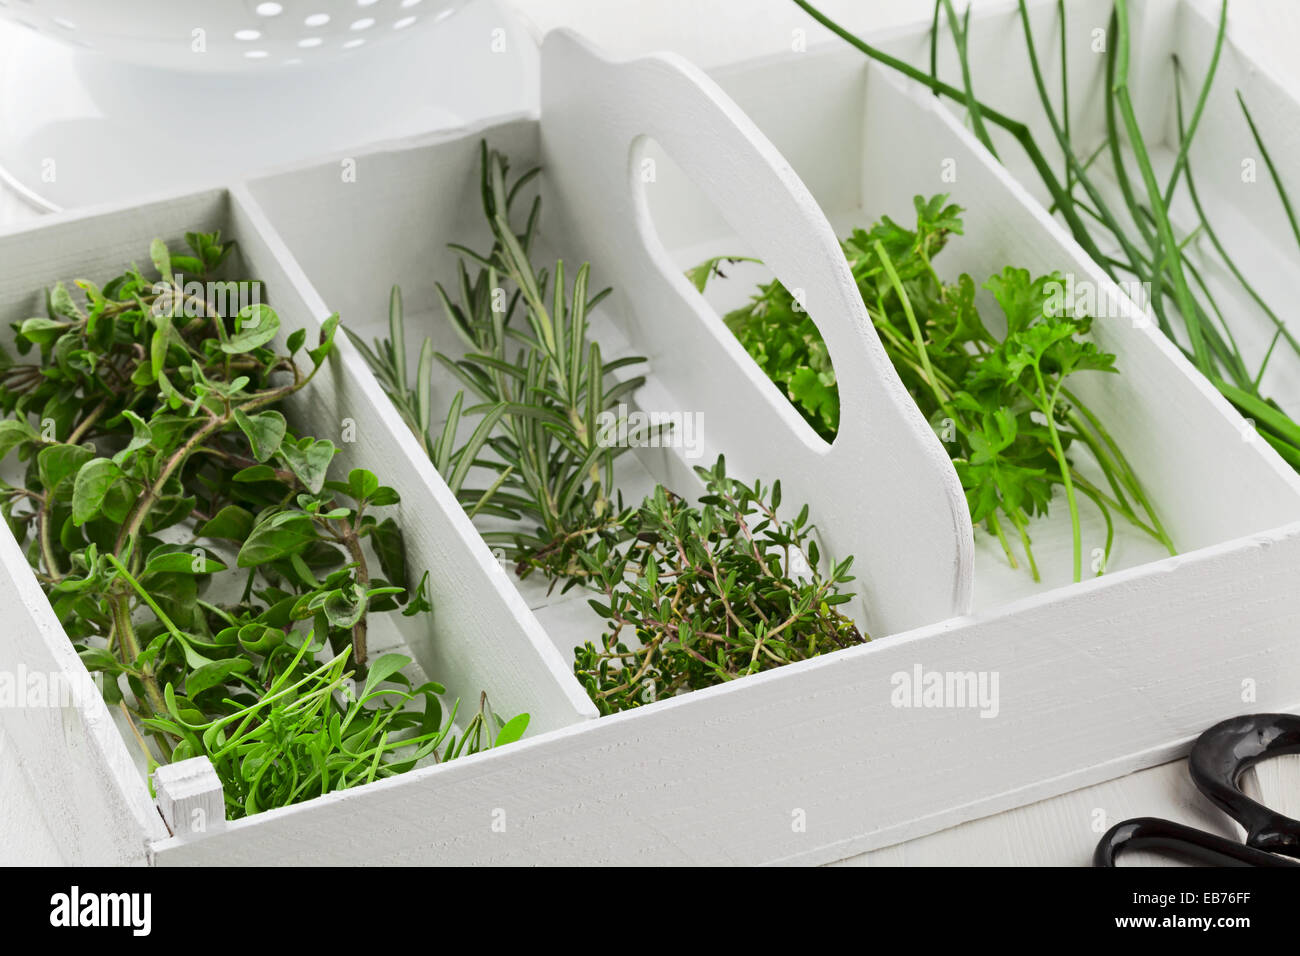 Fresh cut garden herbs (marjoram, cress, rosemary, thyme, parsley, chives) in white wooden box on kitchen table - Stock Image